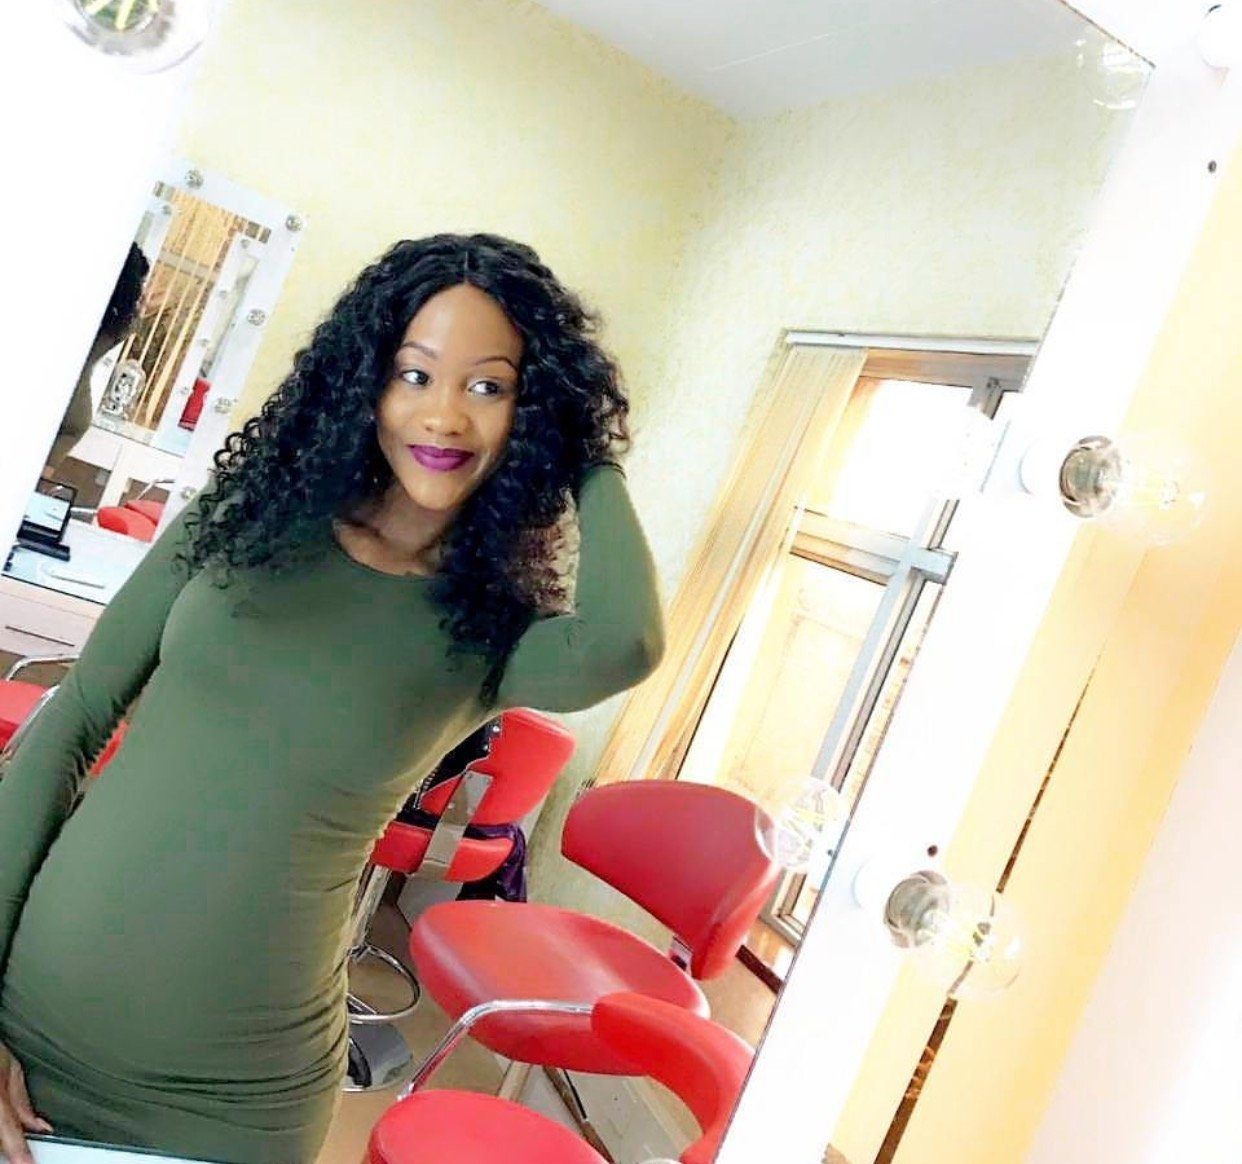 Pregnant and fabulous: Michelle Yola continues to club even with her growing baby bump